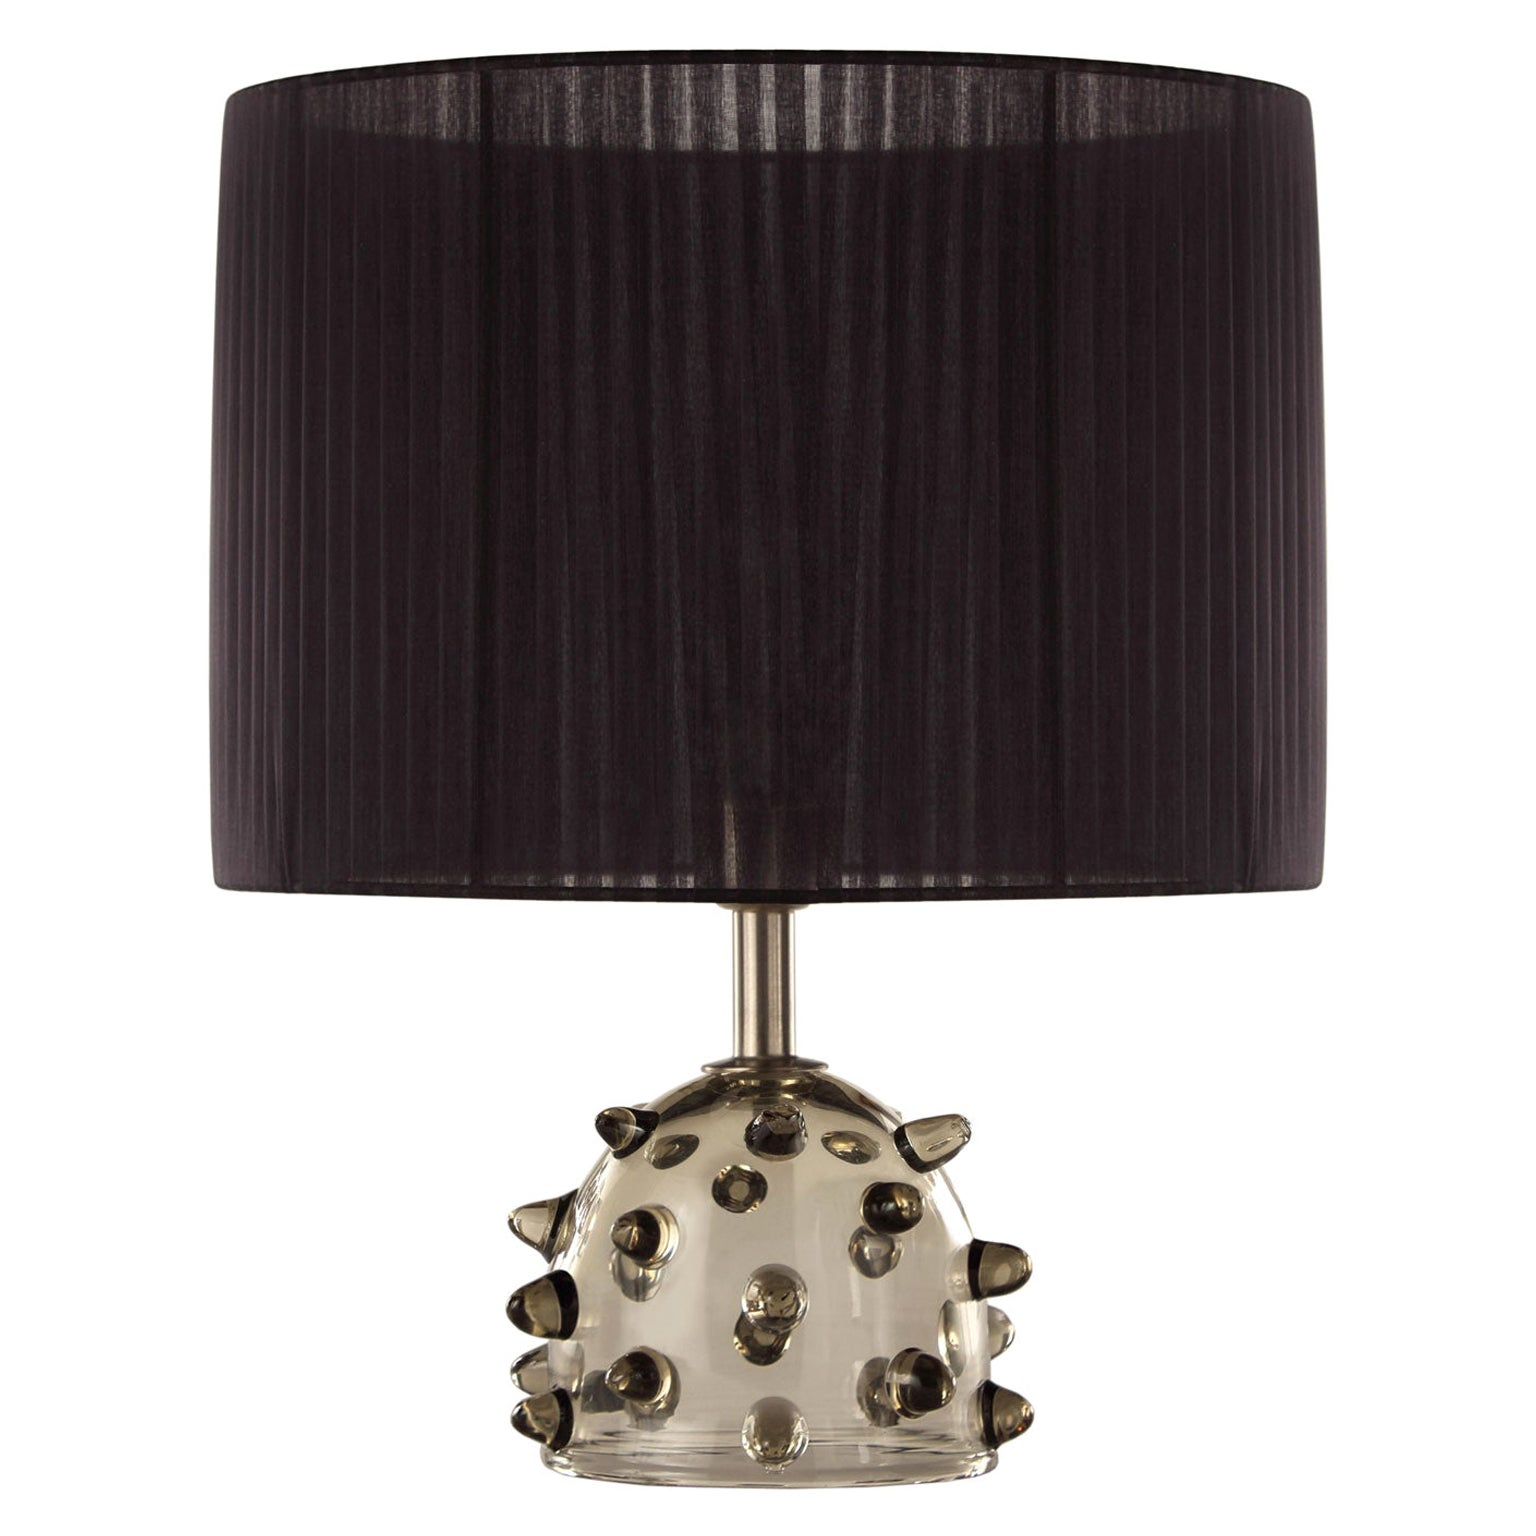 """Artistic Table Lamp Grey Glass, Clear """"Bugne"""" Black Lampshade by Multiforme"""